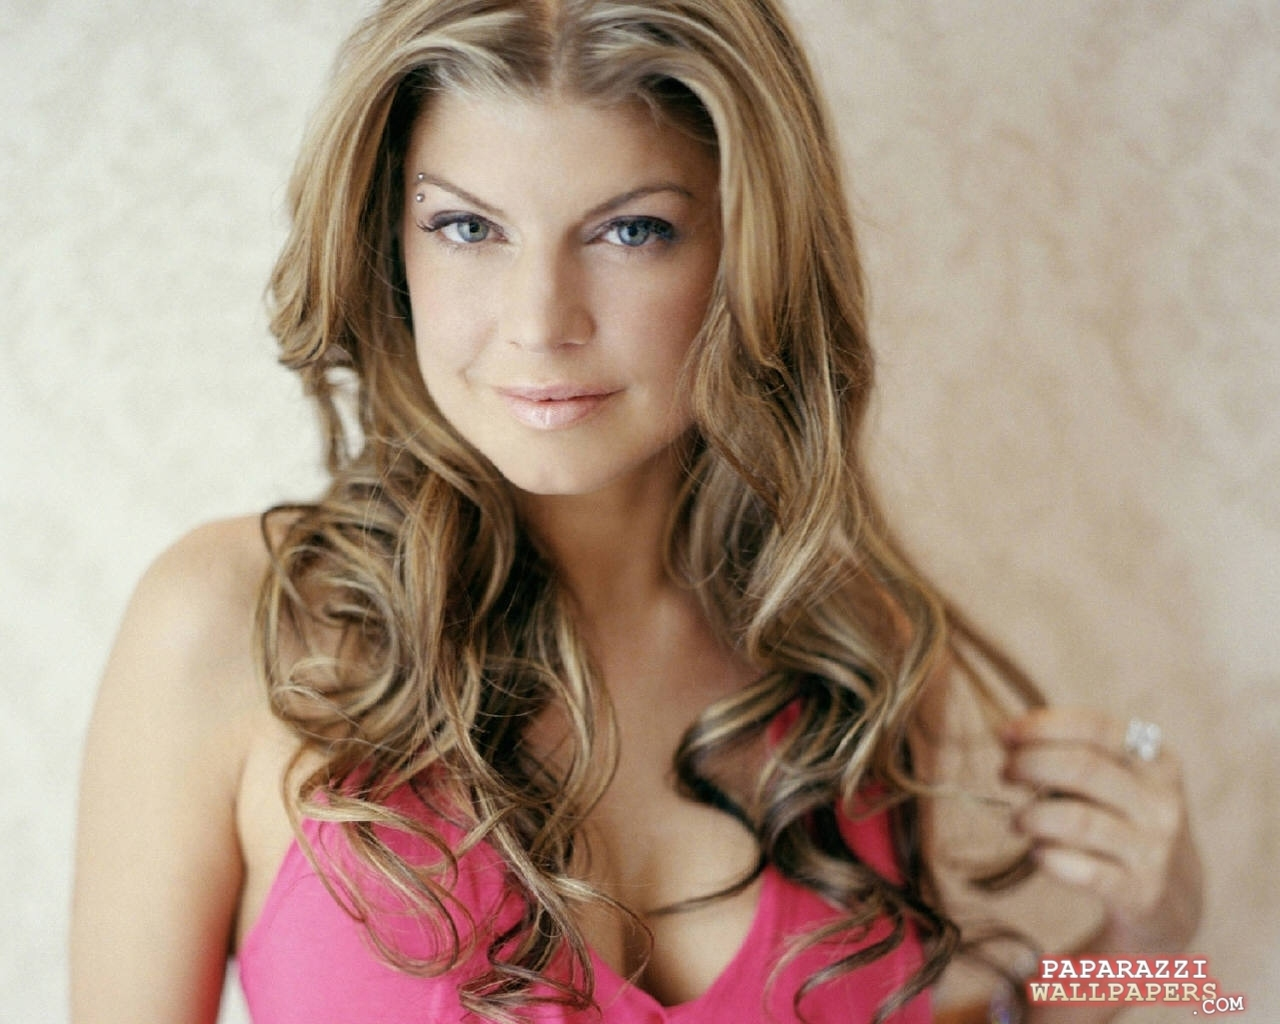 Fergie Images Fergie The Dutchess Hd Wallpaper And